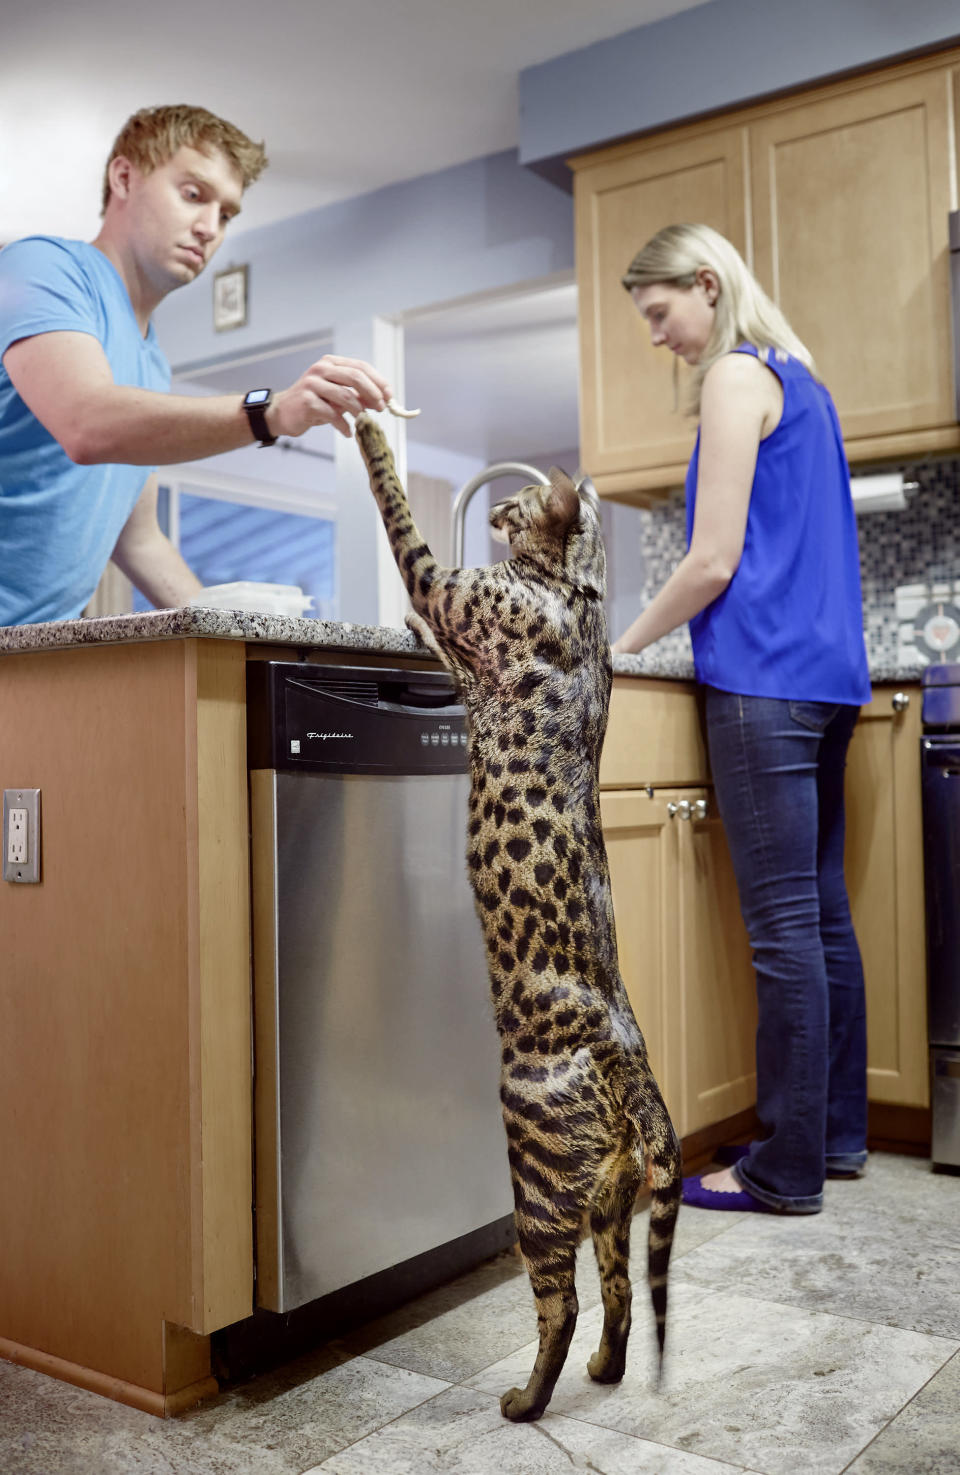 <p>Arcturus the Tallest Cat with its owner William and Lauren Powers. He lives in Ann Arbor, Michigan, and stands at 48.4cm. (PA) </p>